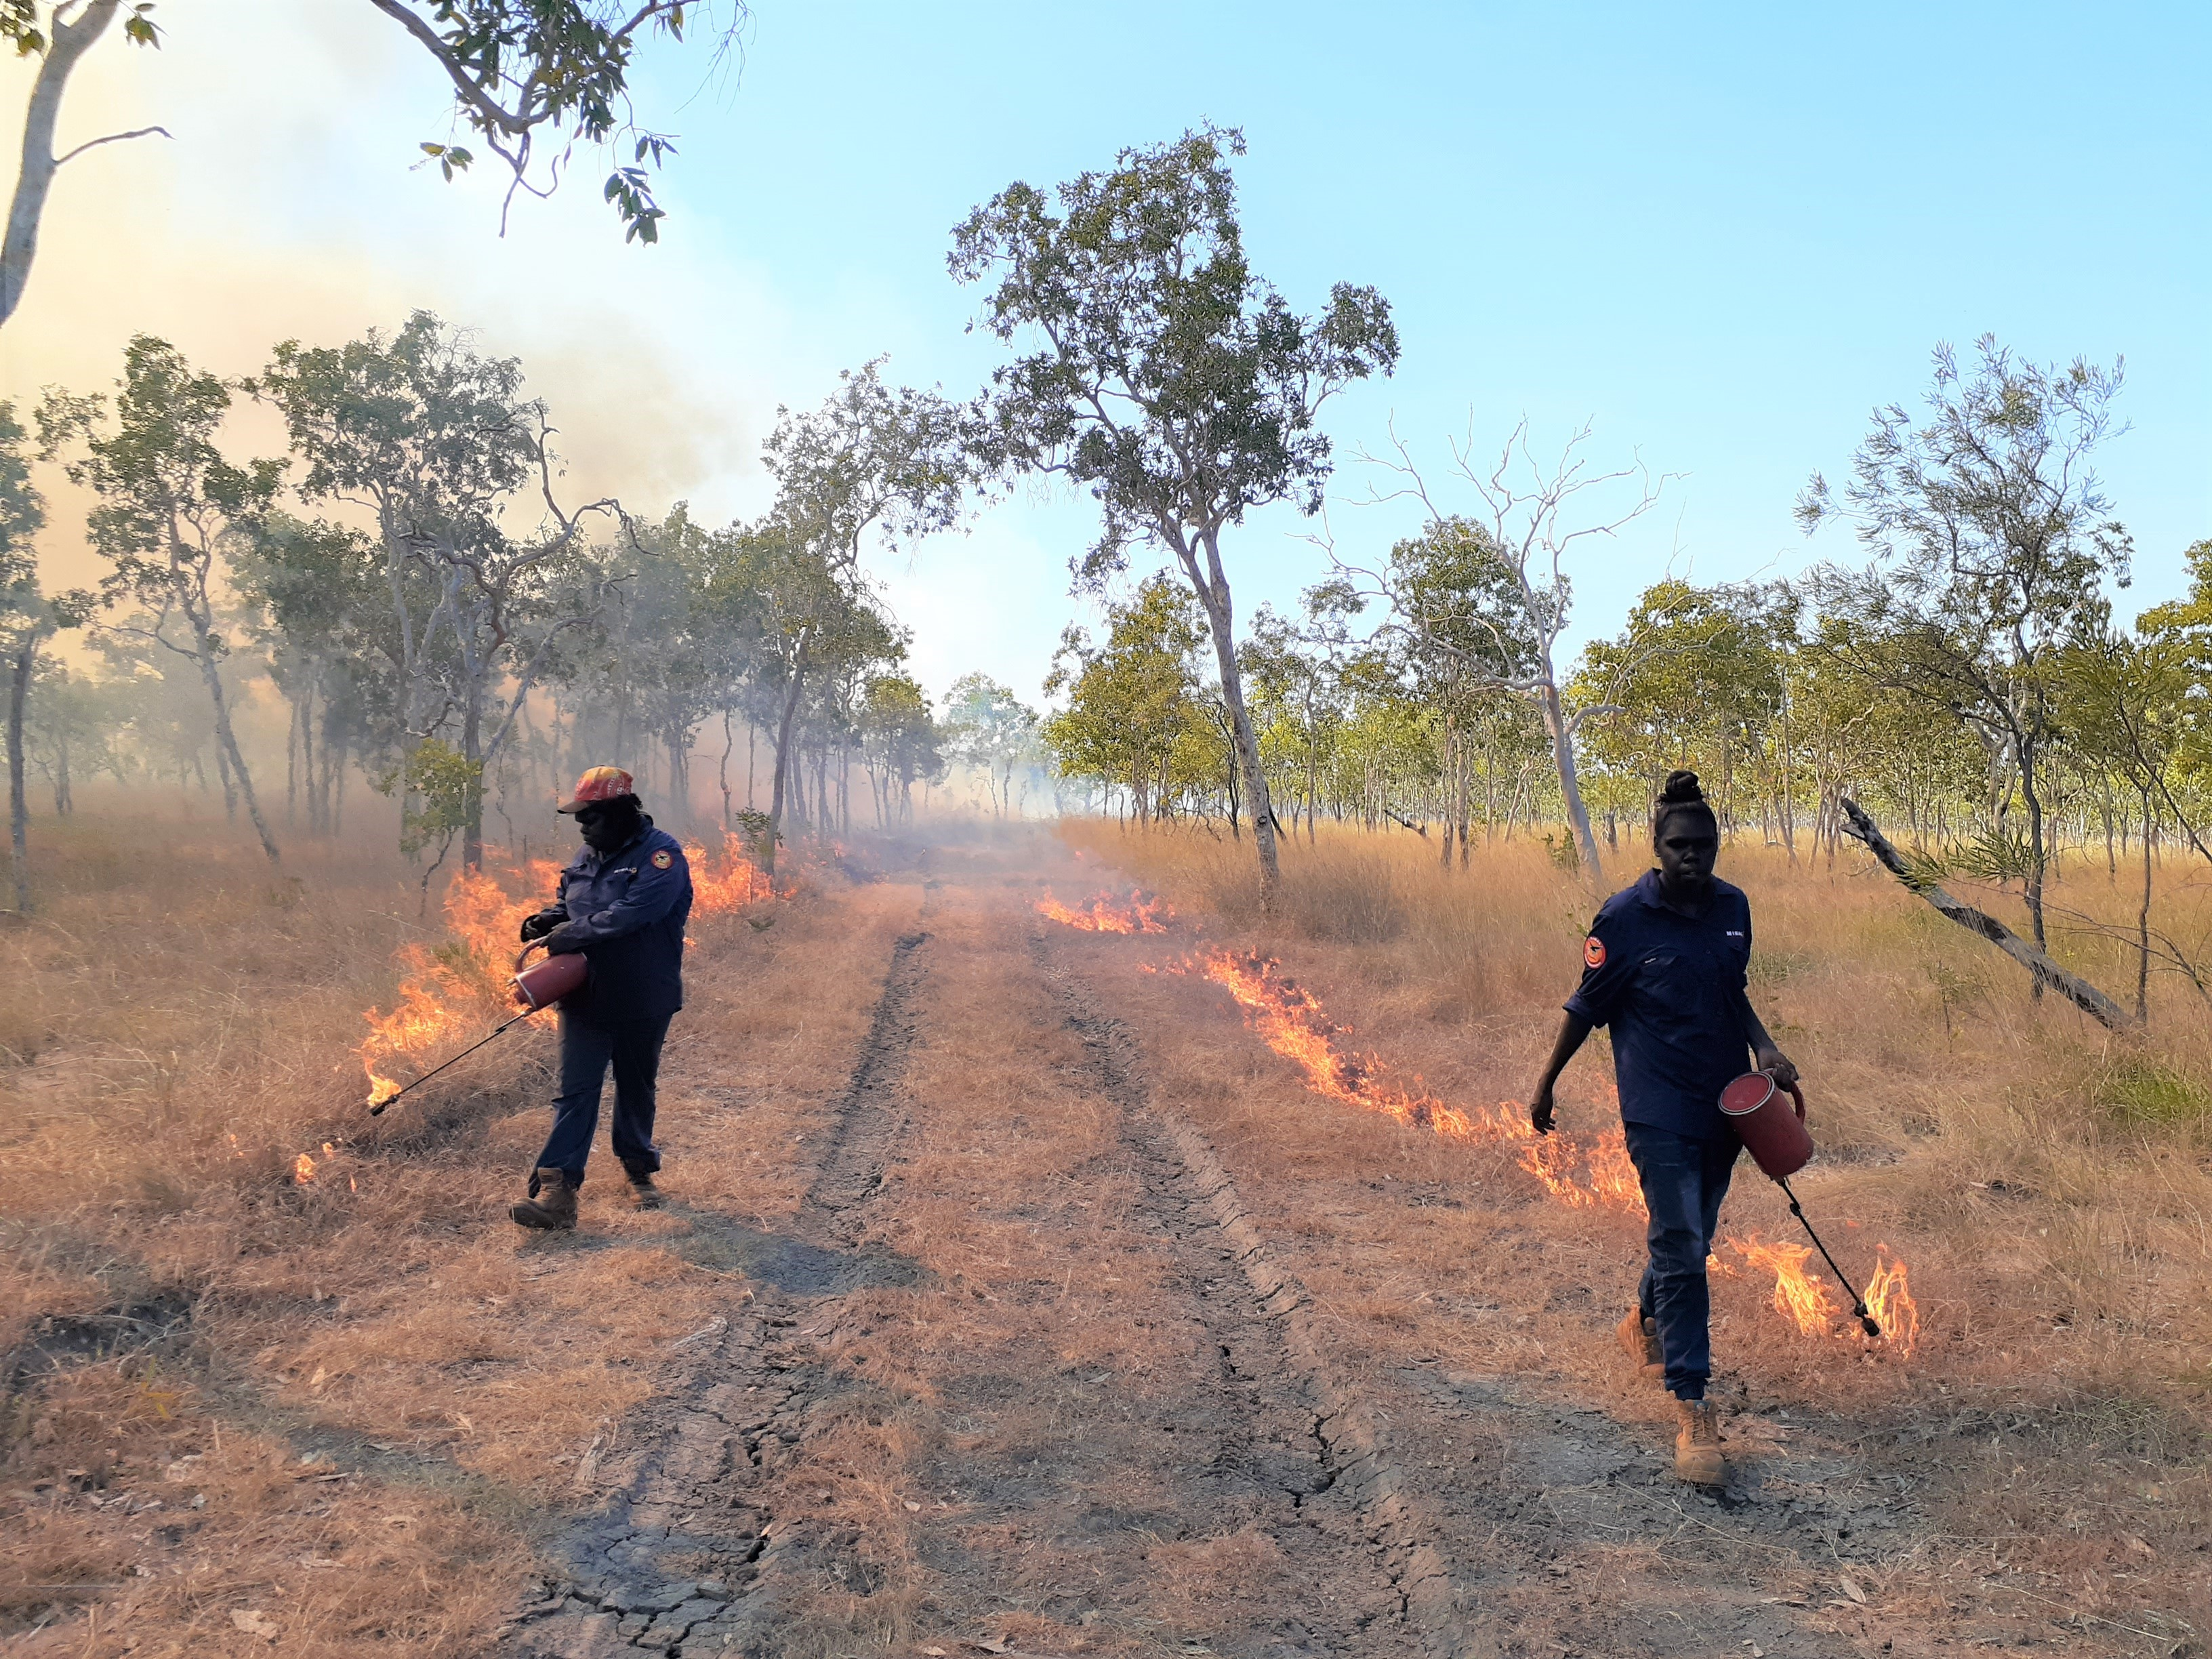 Mimal women rangers burn their country in the 2019 early dry season to prevent hot wildfires later in the year